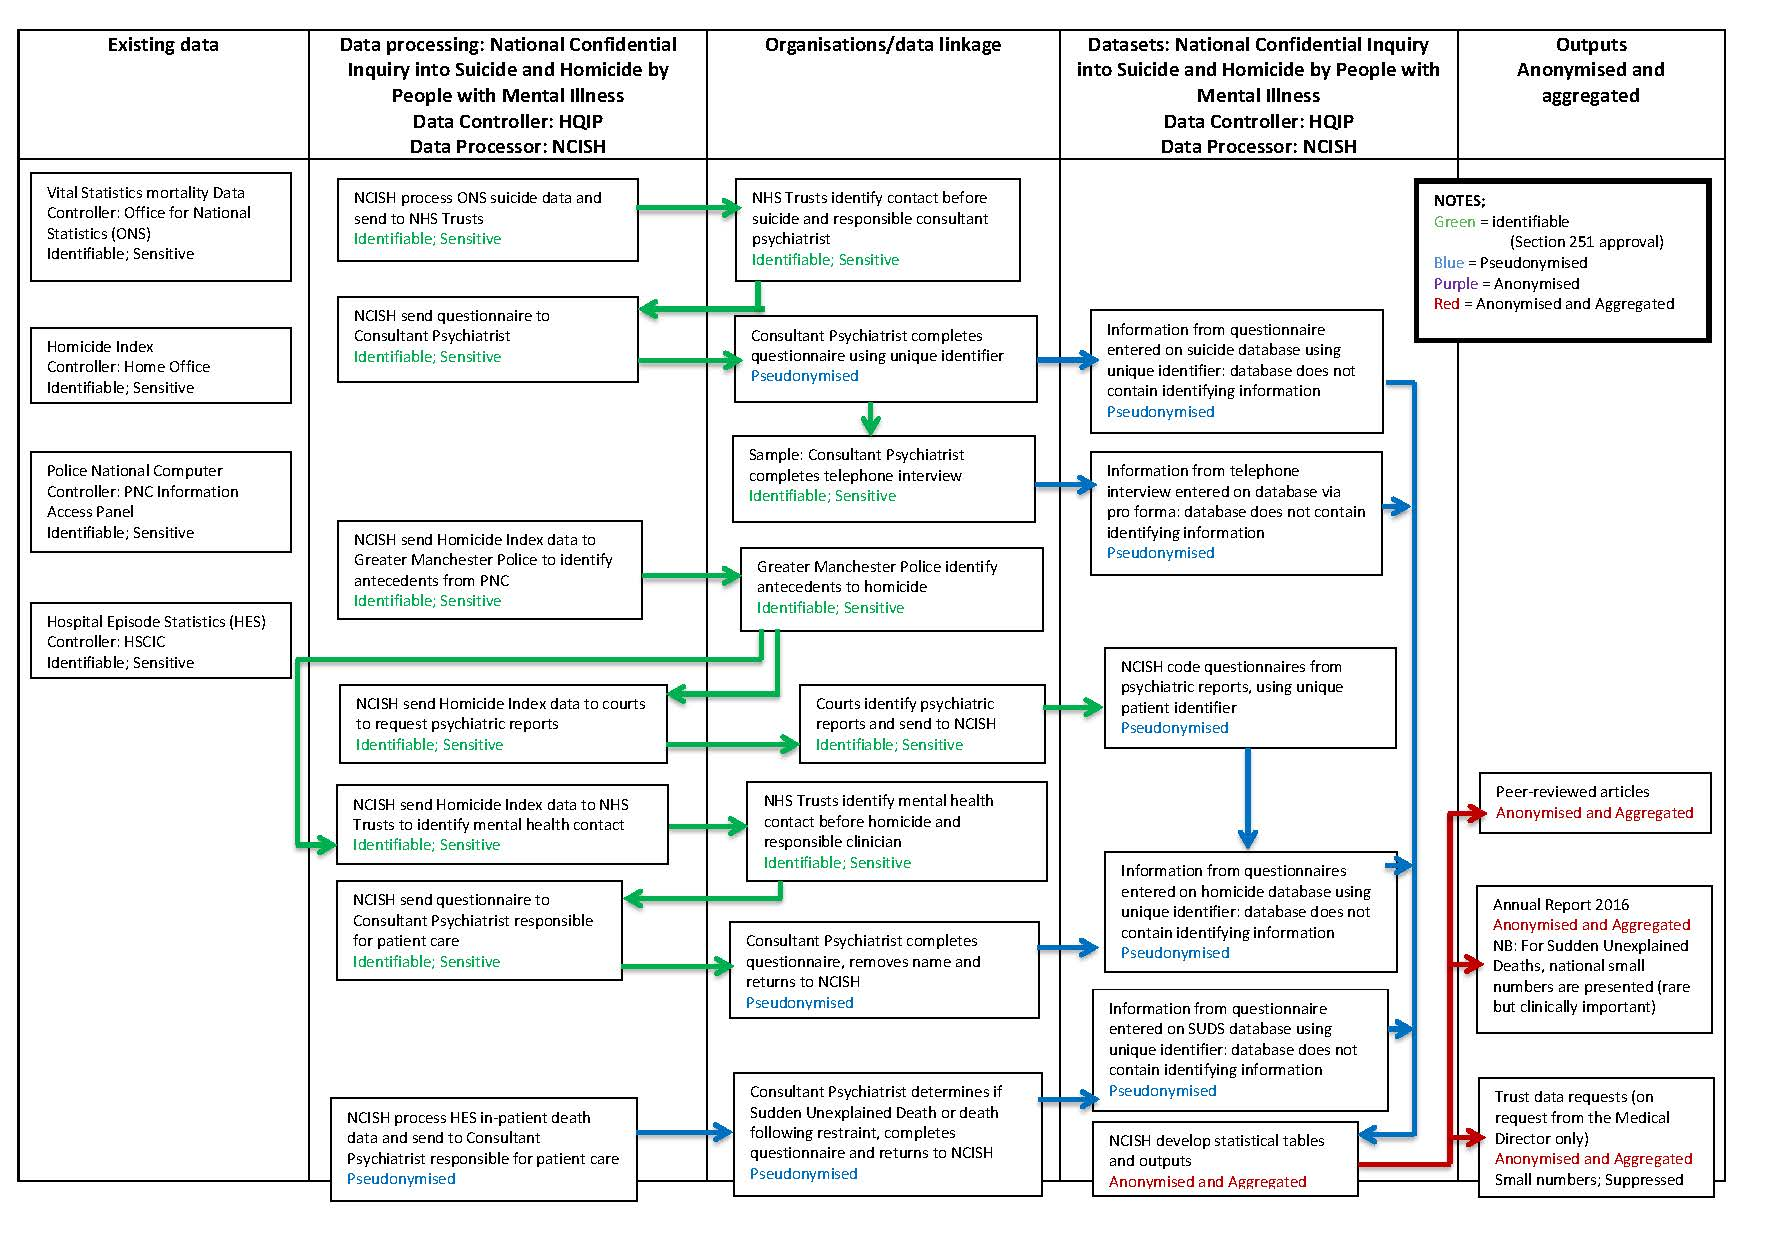 Our data security centre for mental health and safety university our patient data flow chart shows who provides data to us who we share that data with and at what stage identifiable data are pseudonymisedanonymised geenschuldenfo Gallery